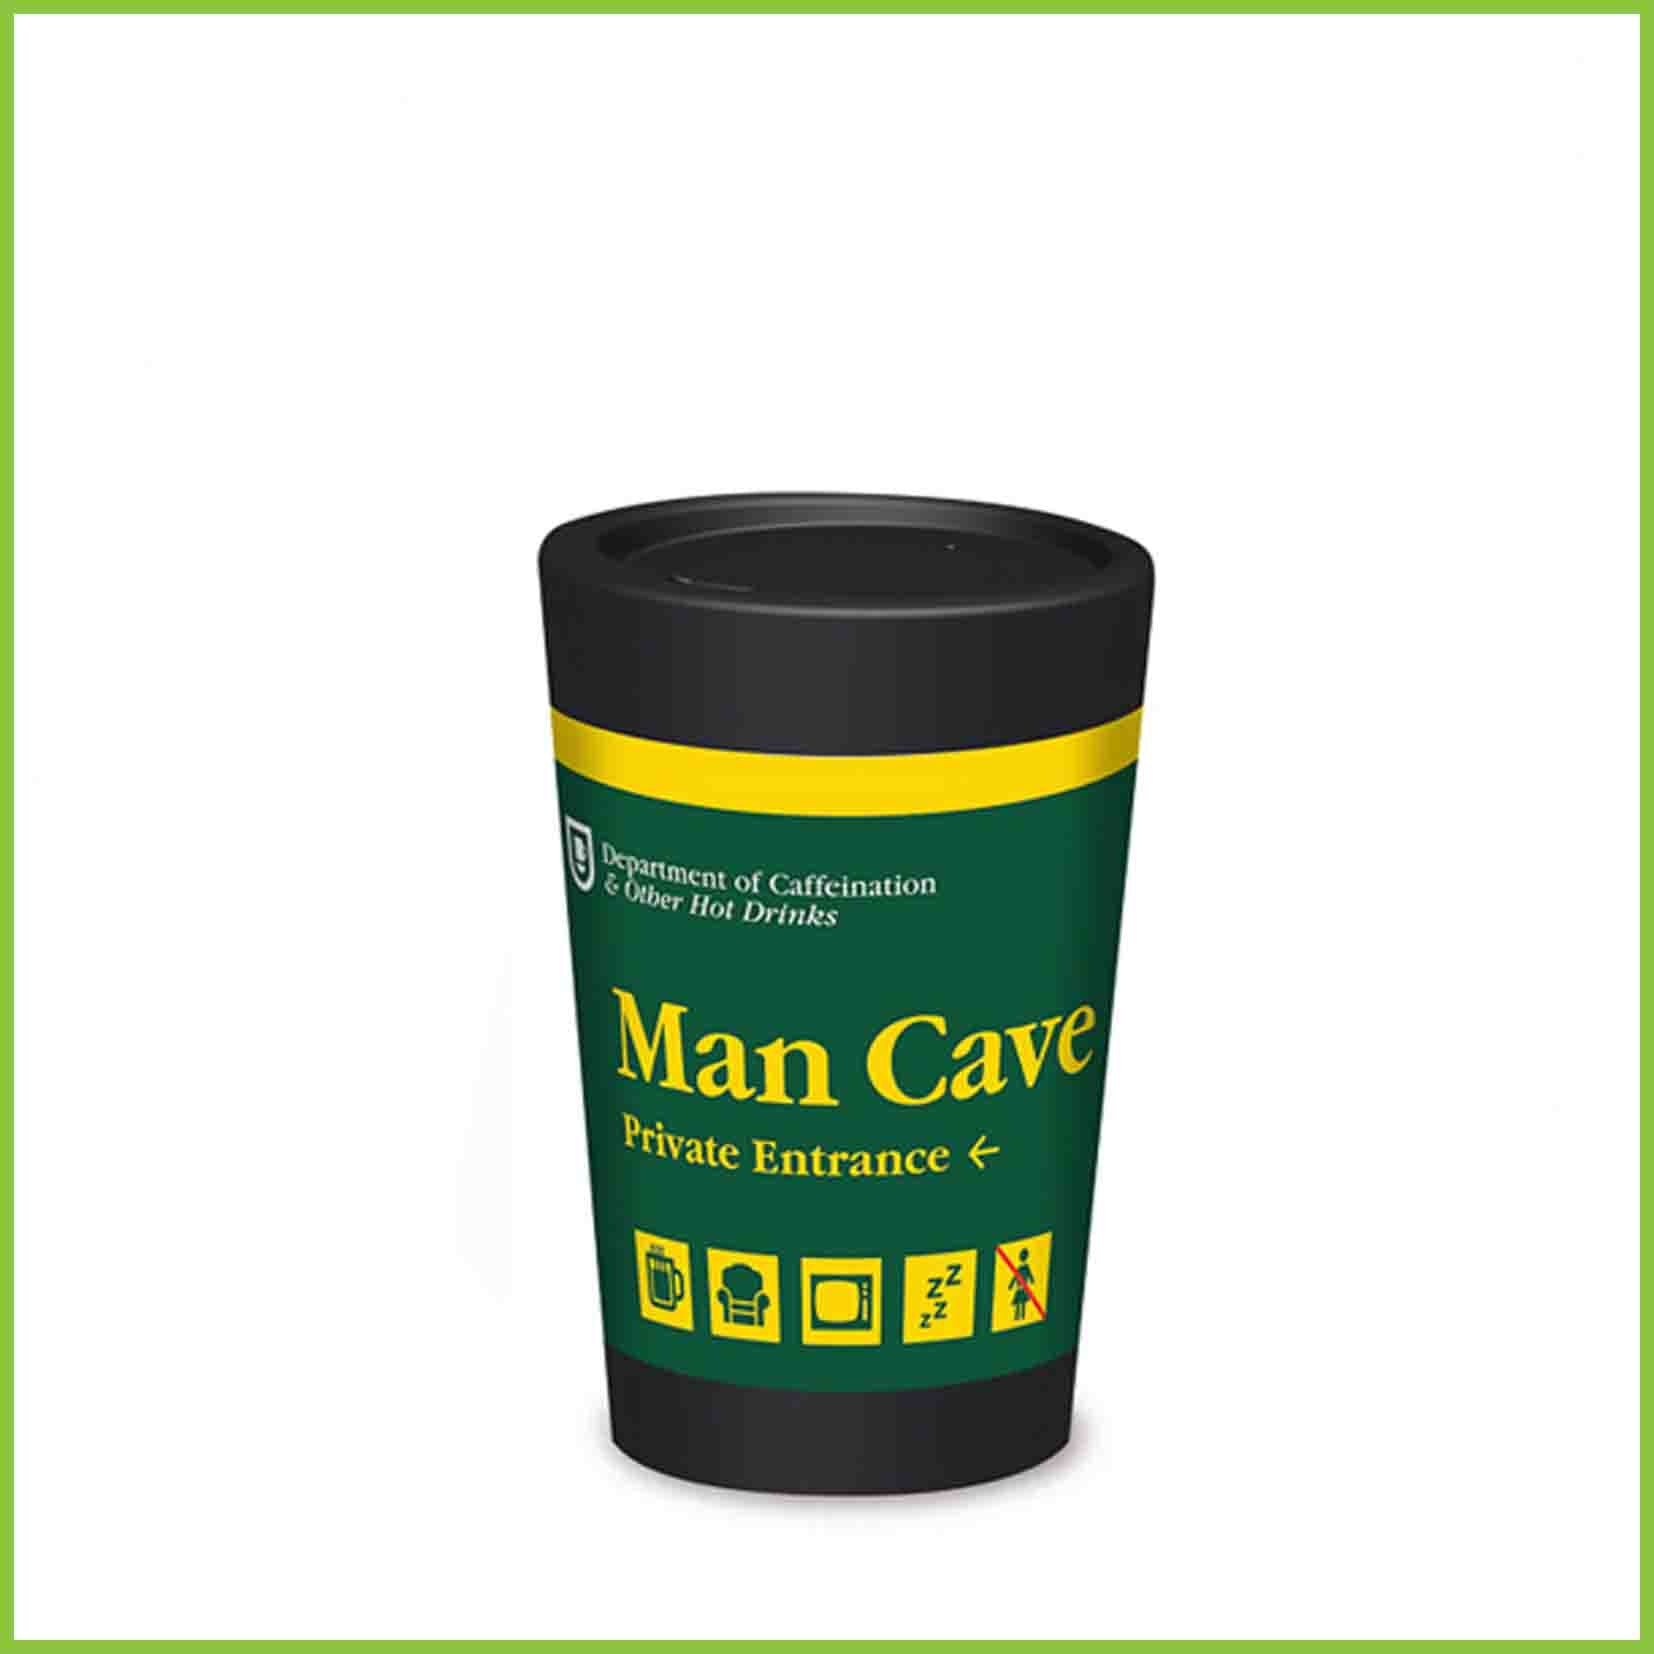 A lightweight reusable cup from CuppaCoffeeCup with a Mancave design.